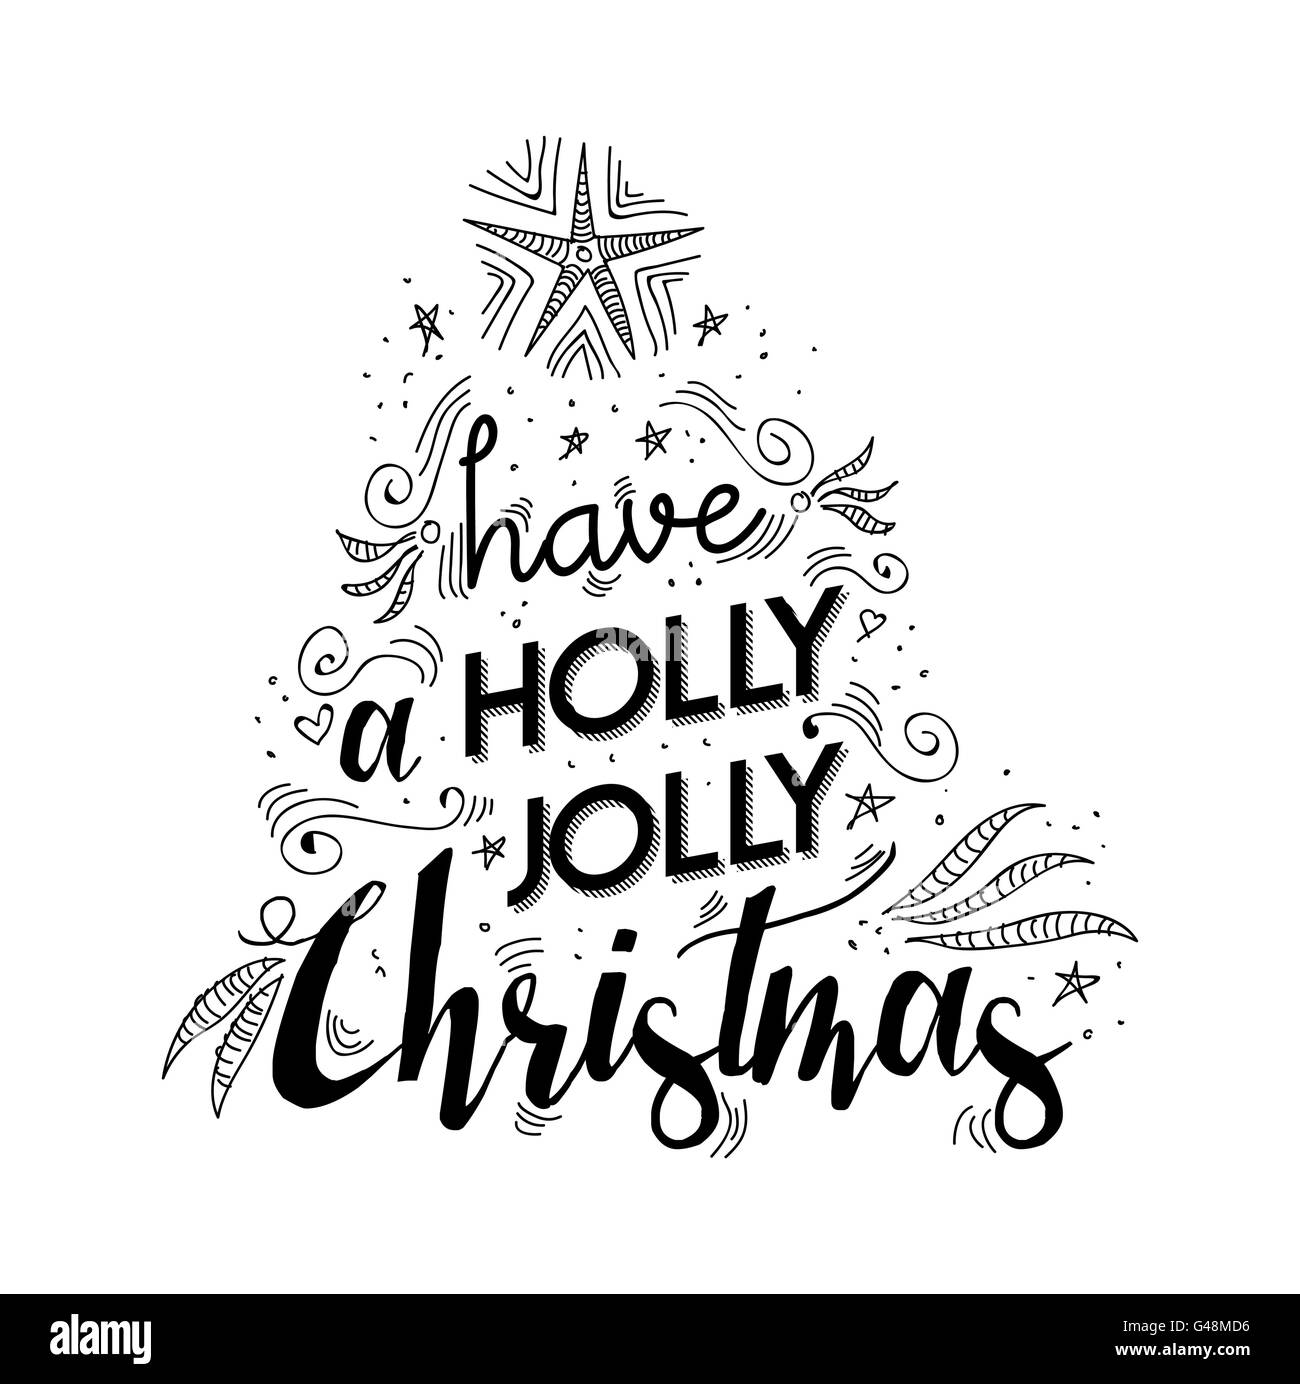 Merry christmas lettering handwritten design. Holly jolly happy xmas ...